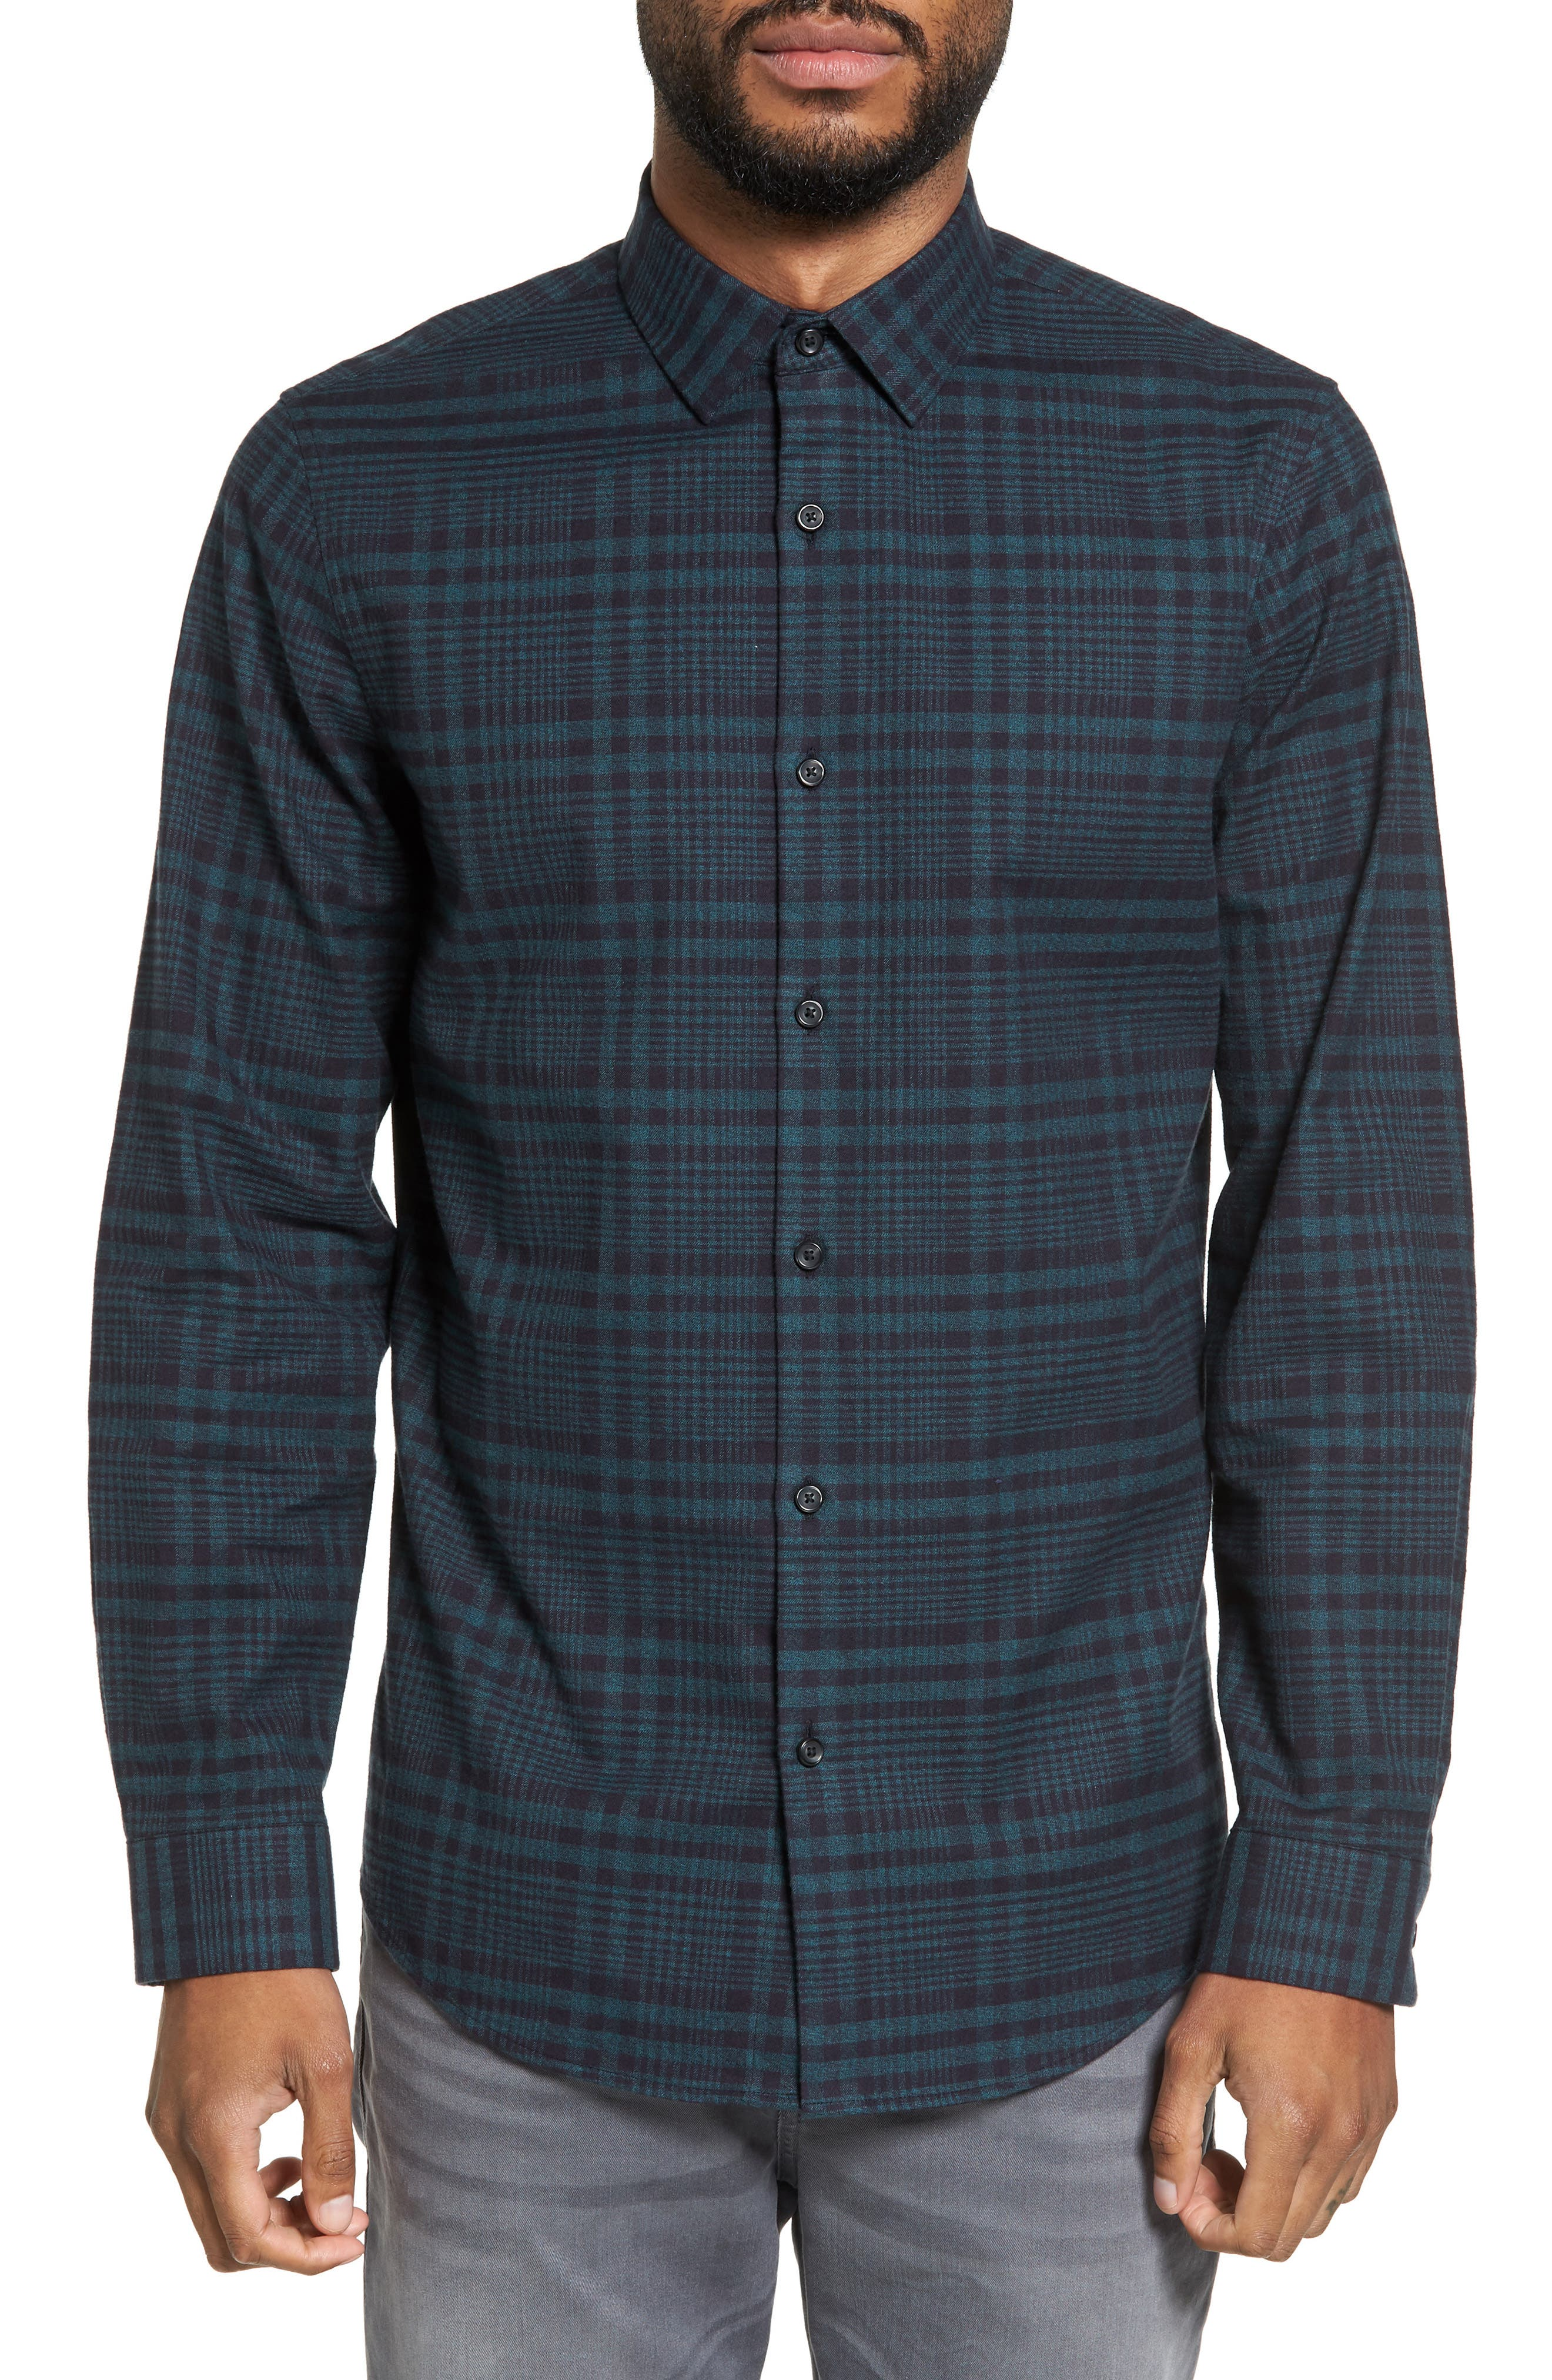 Alternate Image 1 Selected - Calibrate Plaid Flannel Sport Shirt